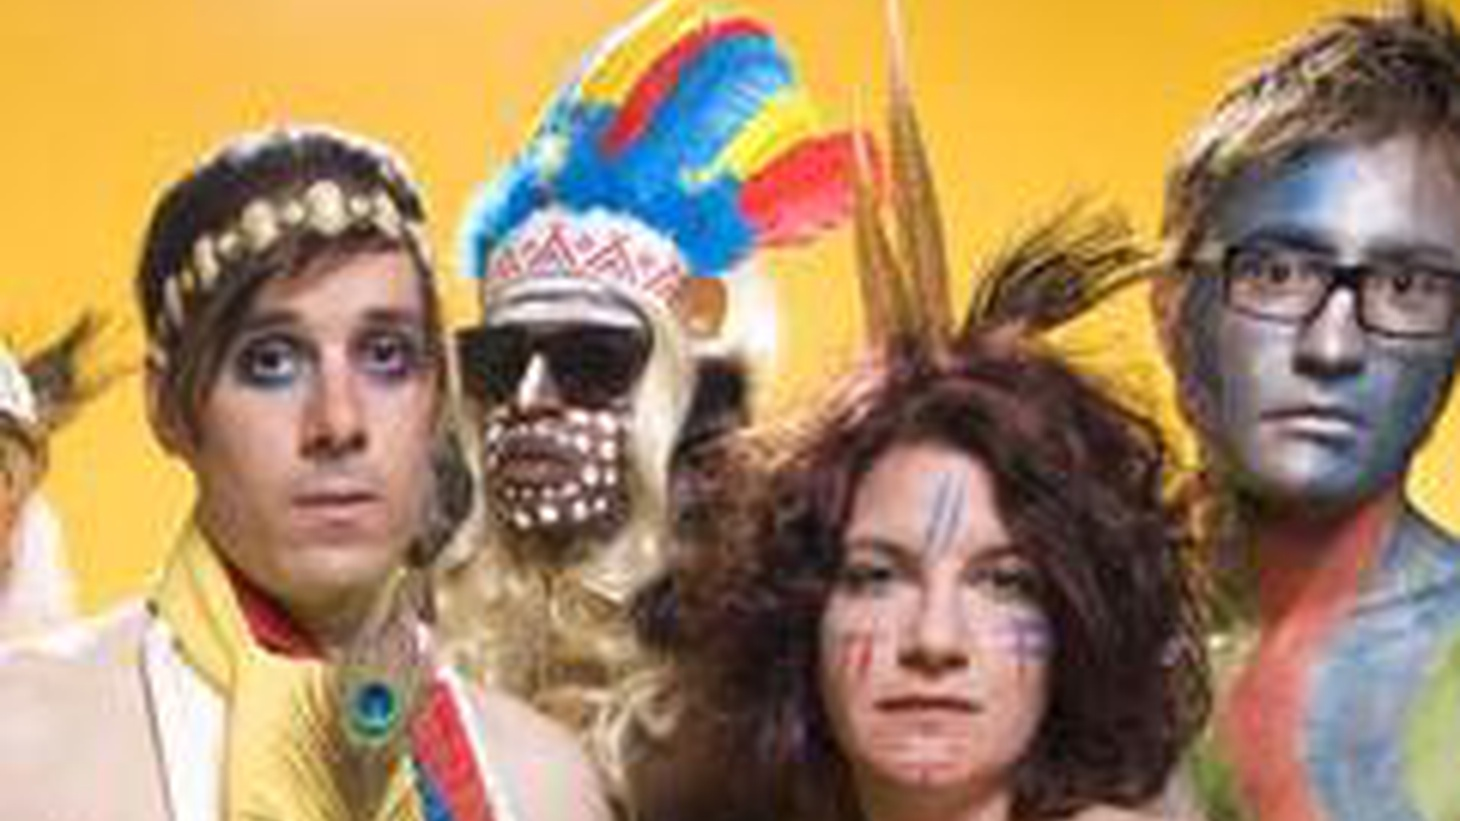 Indie rockers, Of Montreal, perform on Morning Becomes Eclectic at 11:15am.Click Here to Watch!